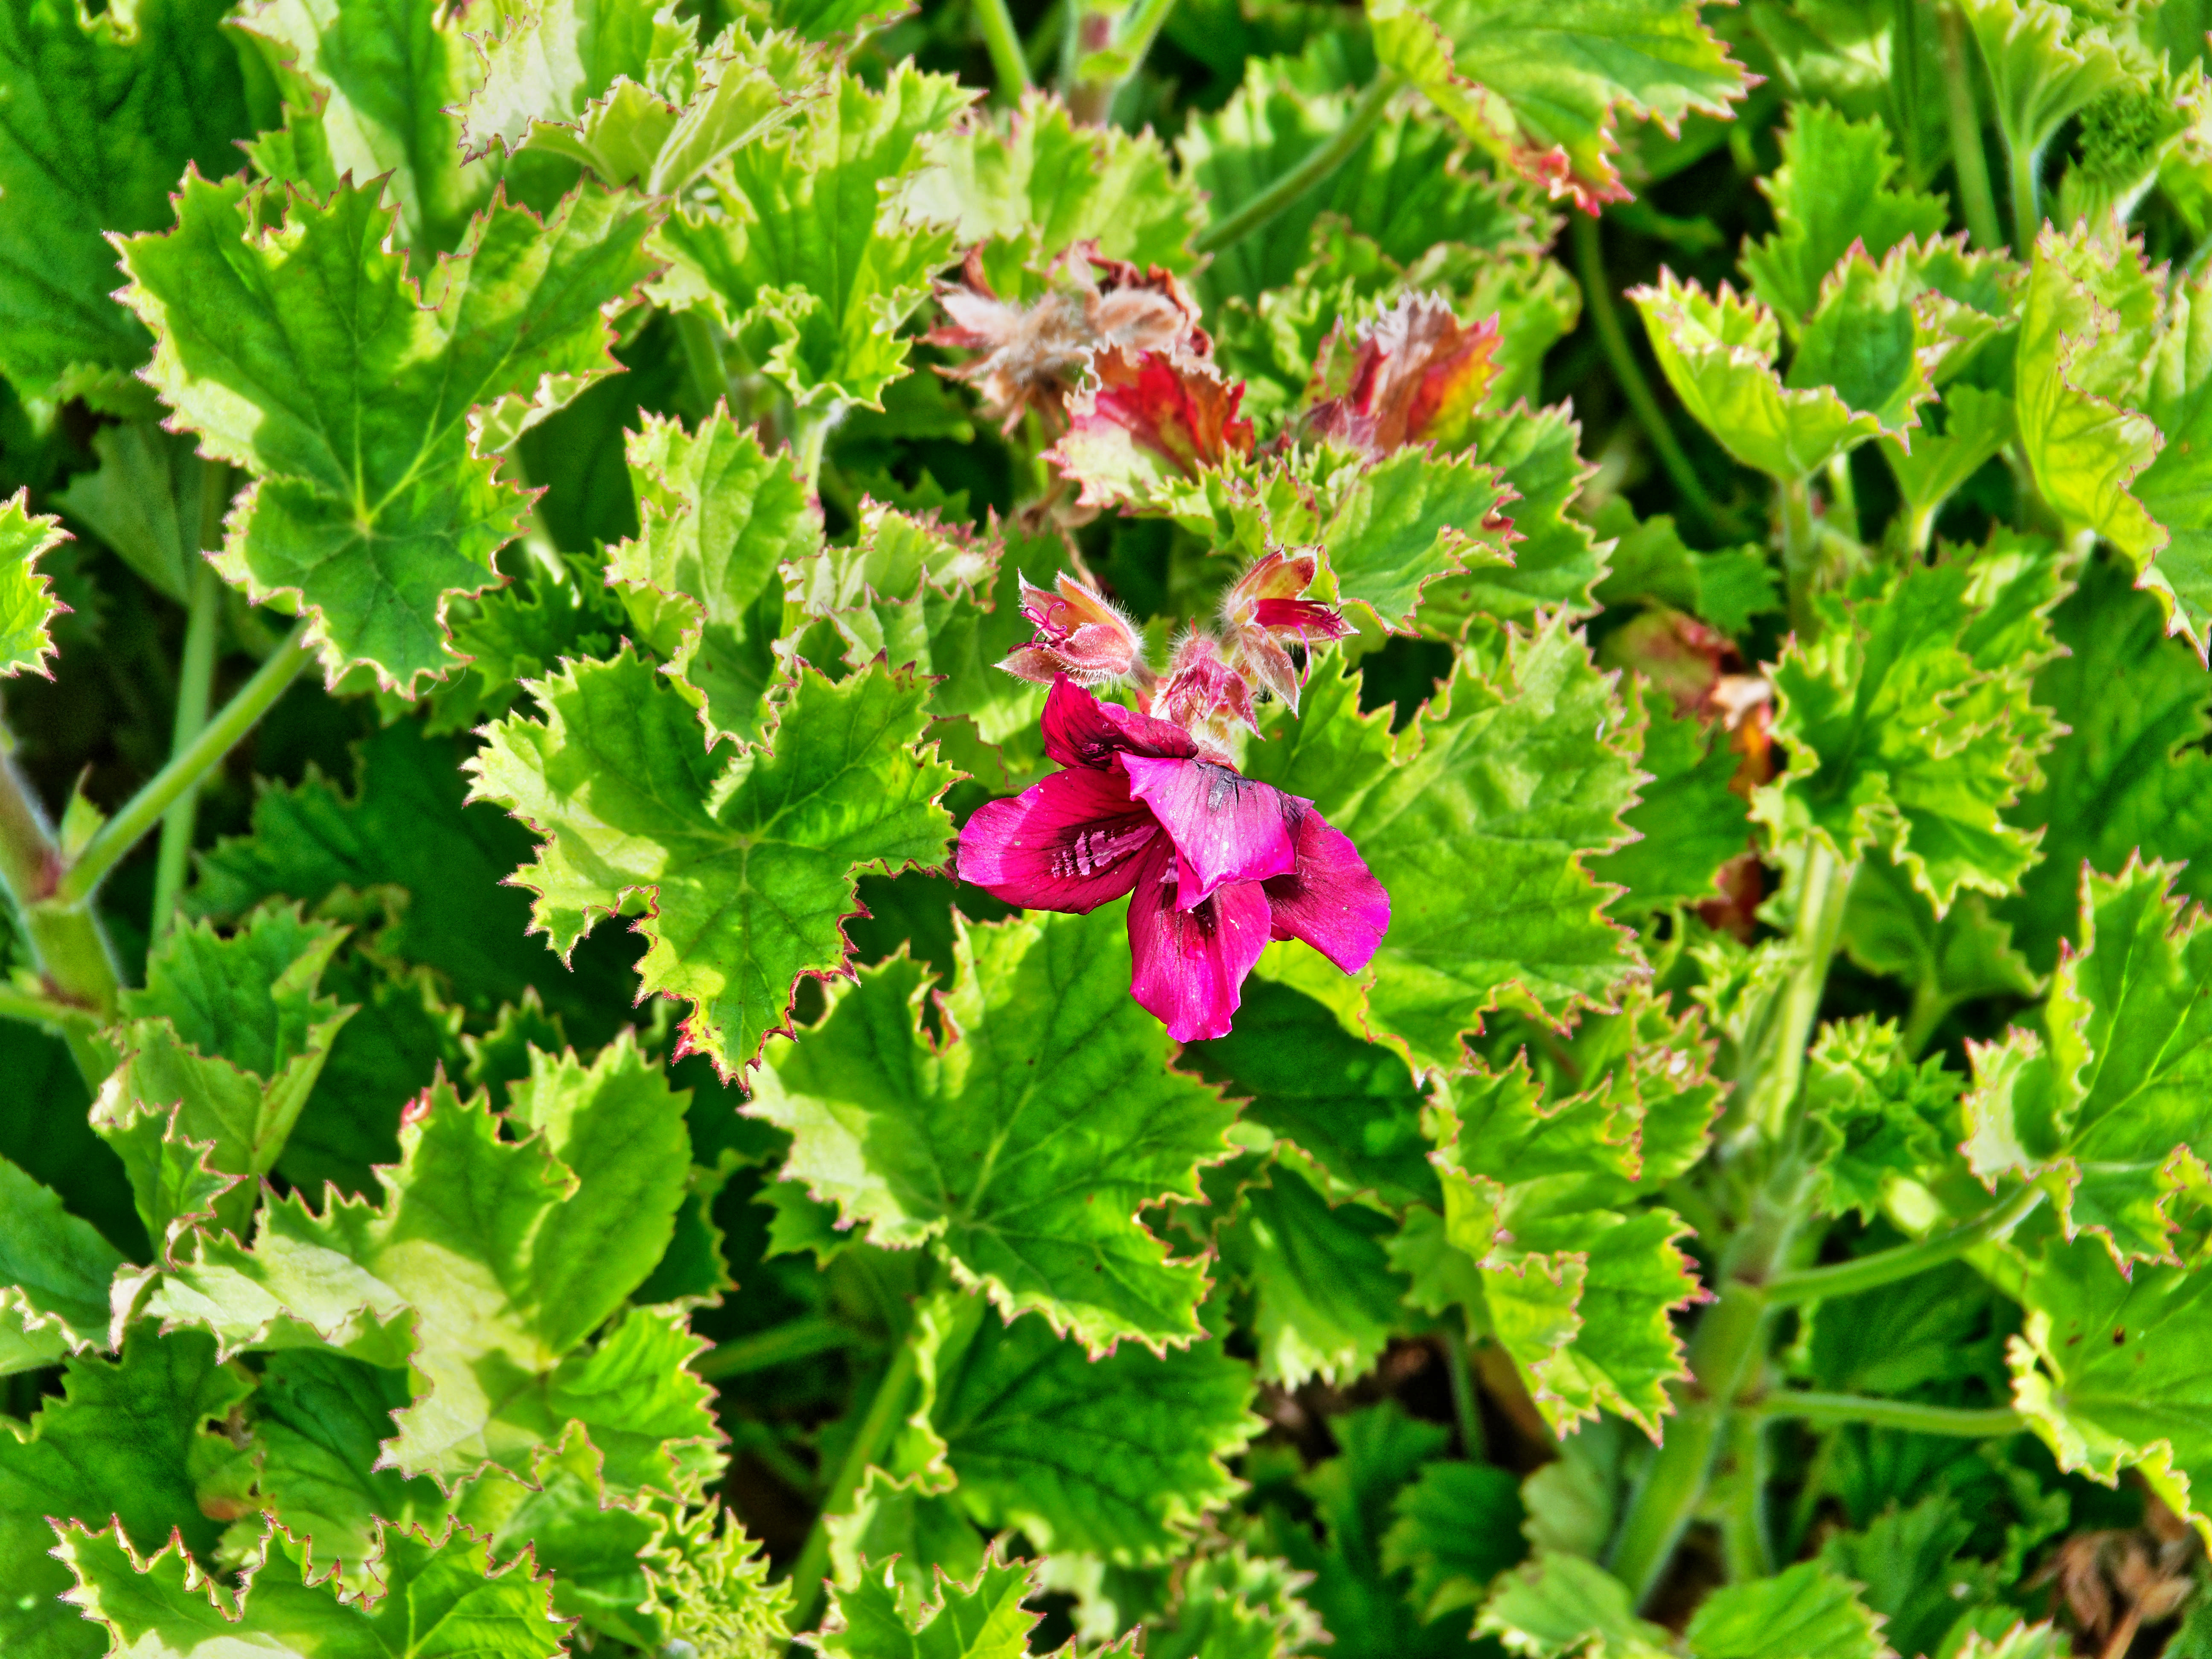 This should be Pelargonium-1.jpeg.  Is it missing?